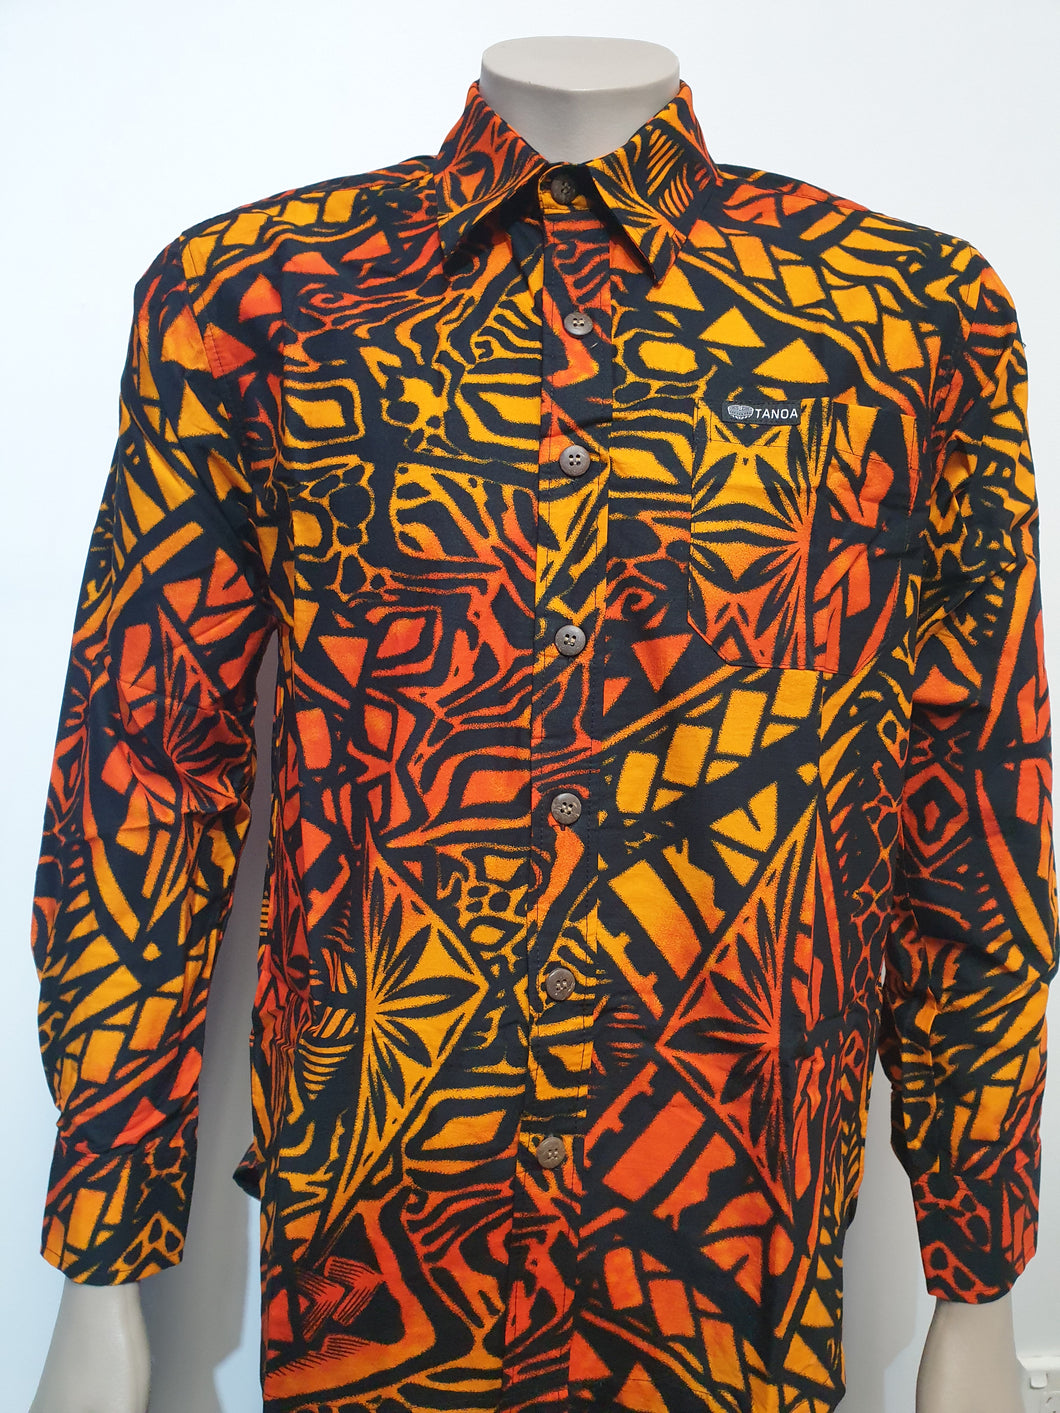 Tanoa Samoa Cotton Mens L/S Bula Shirt - SL1064-Orange